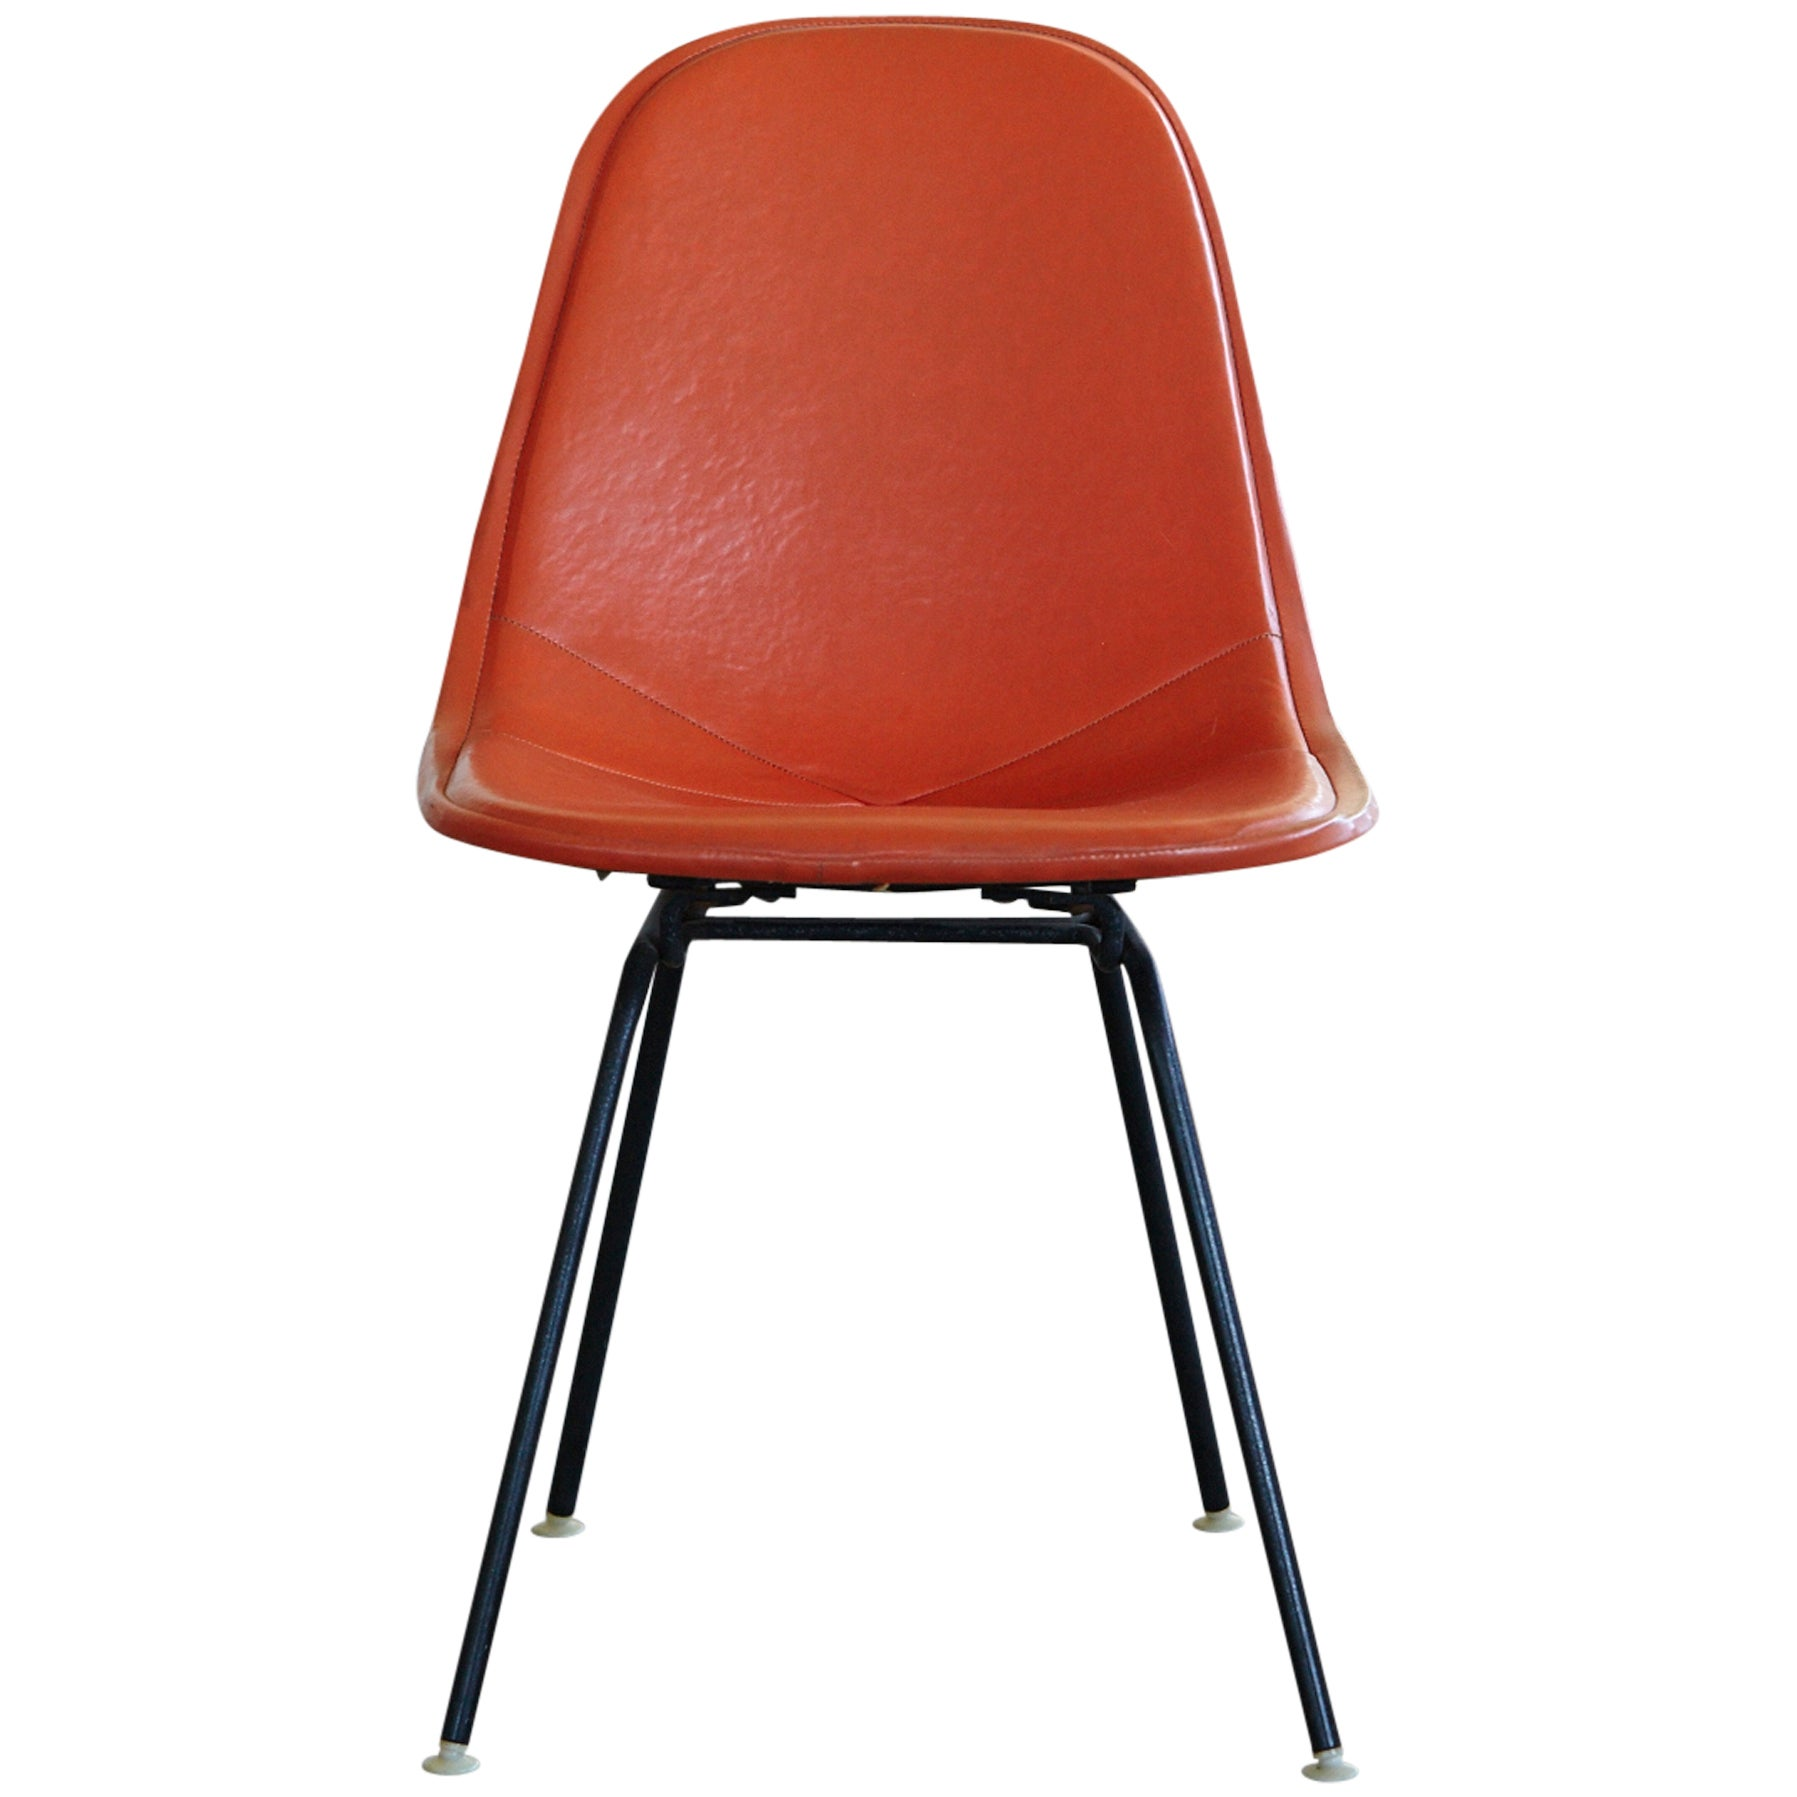 Original Eames DKX-1 Side Chair in Orange Leather for Herman Miller, 1960s